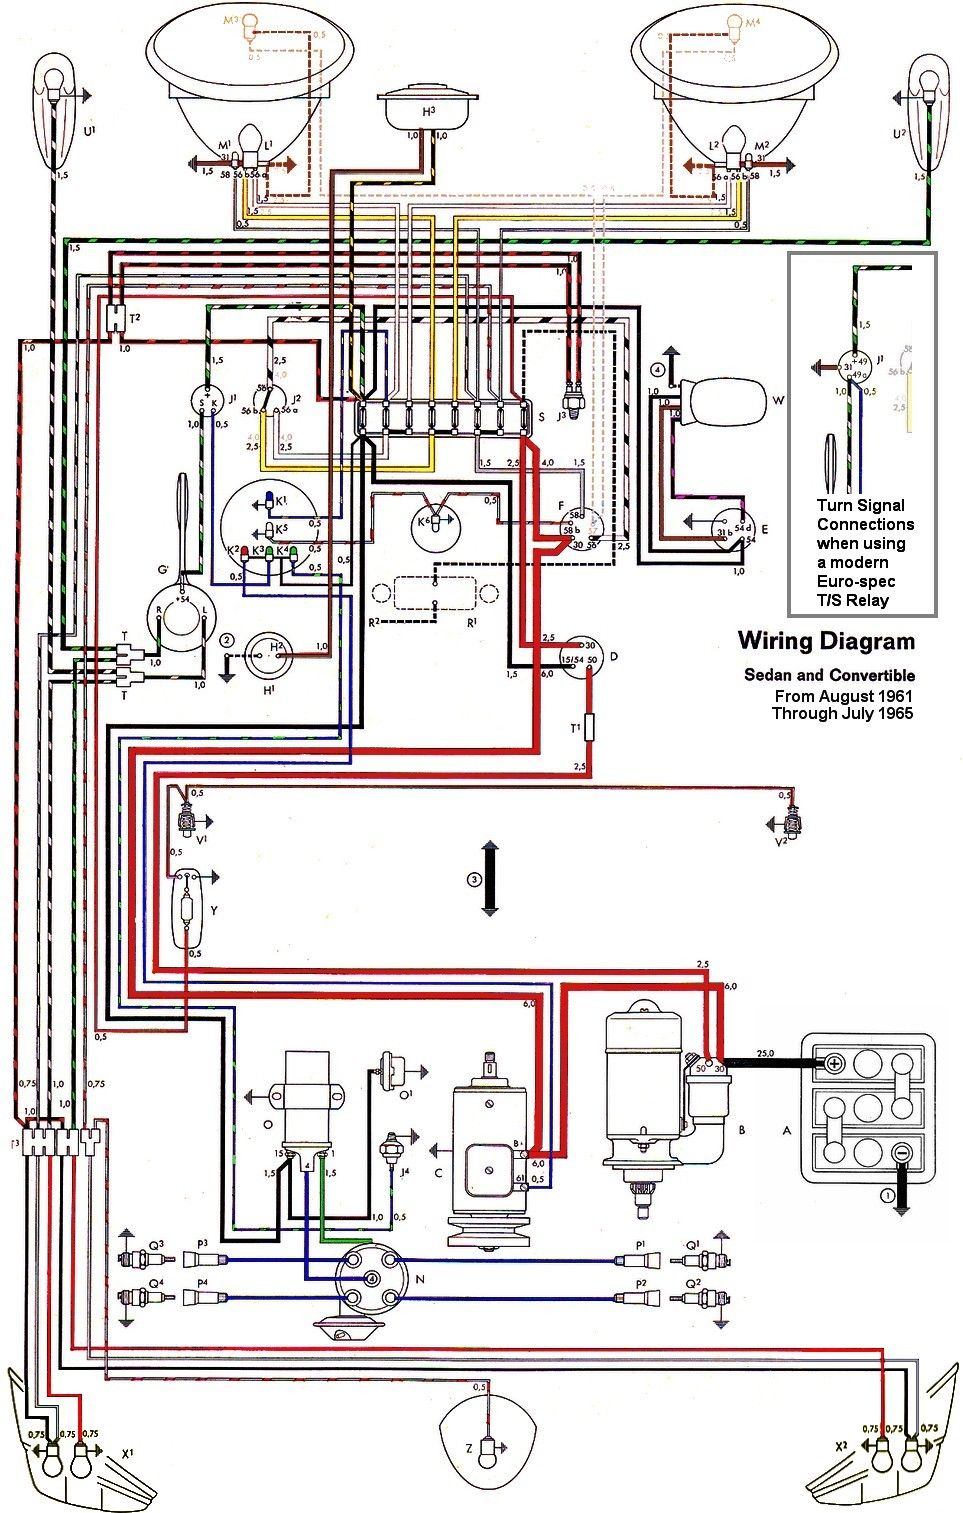 small resolution of wiring diagram vw beetle sedan and convertible 1961 1965 vw vw vw bug starter relay wiring